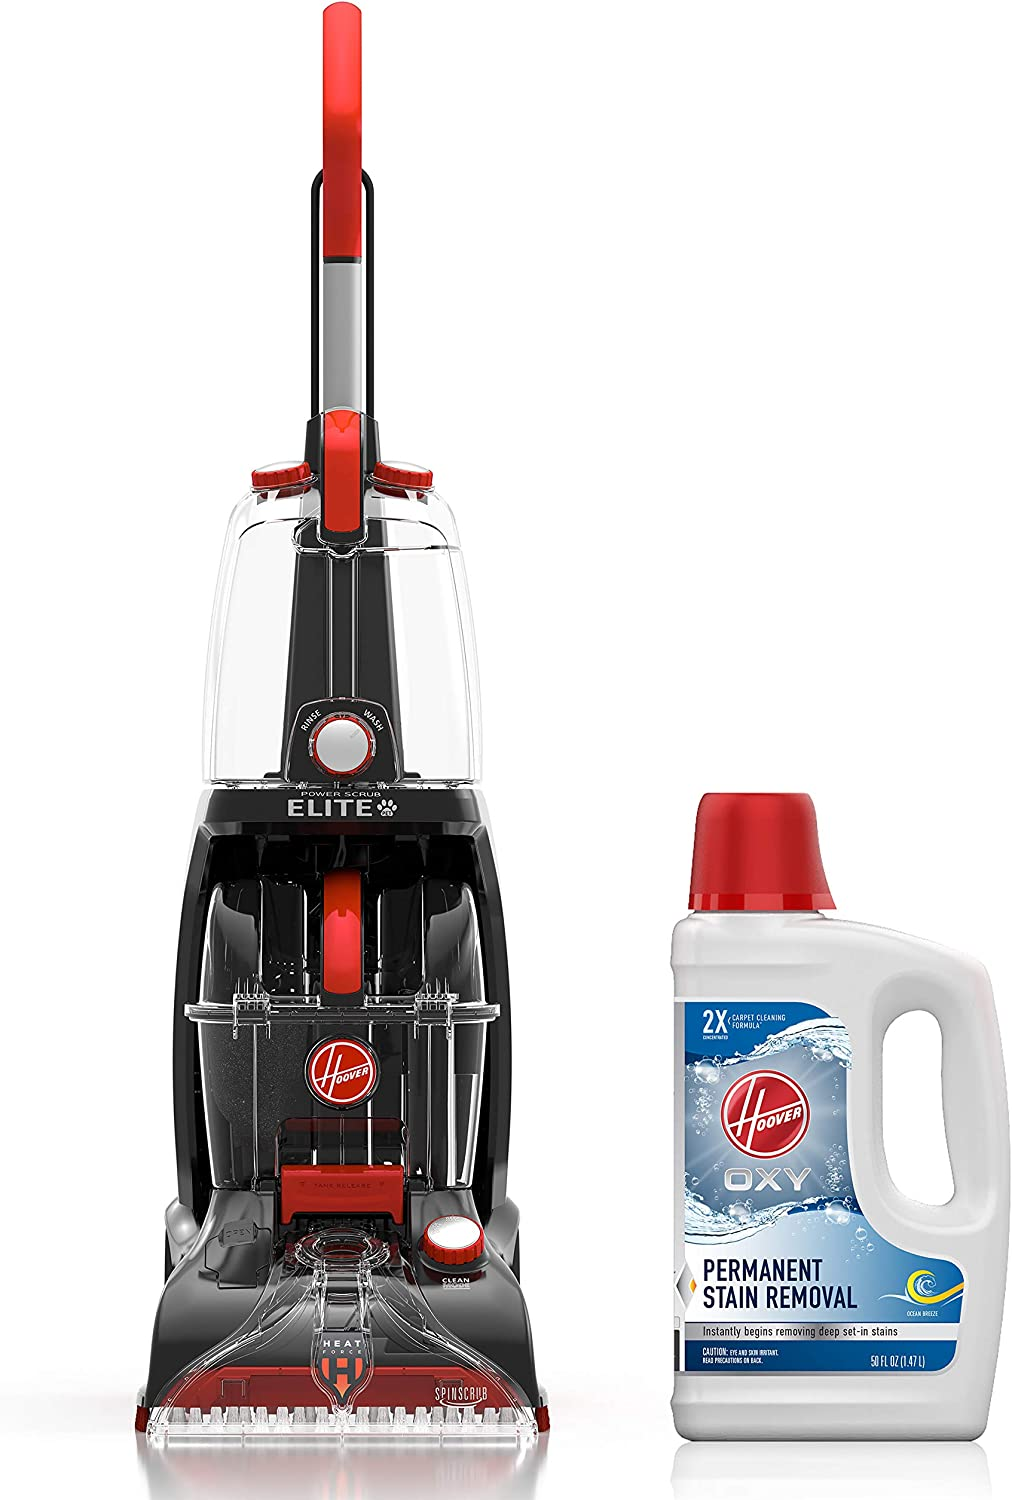 Hoover Power Scrub Elite Pet Carpet Cleaner with Oxy Carpet Cleaning Solution (50 oz), FH50251, AH30950